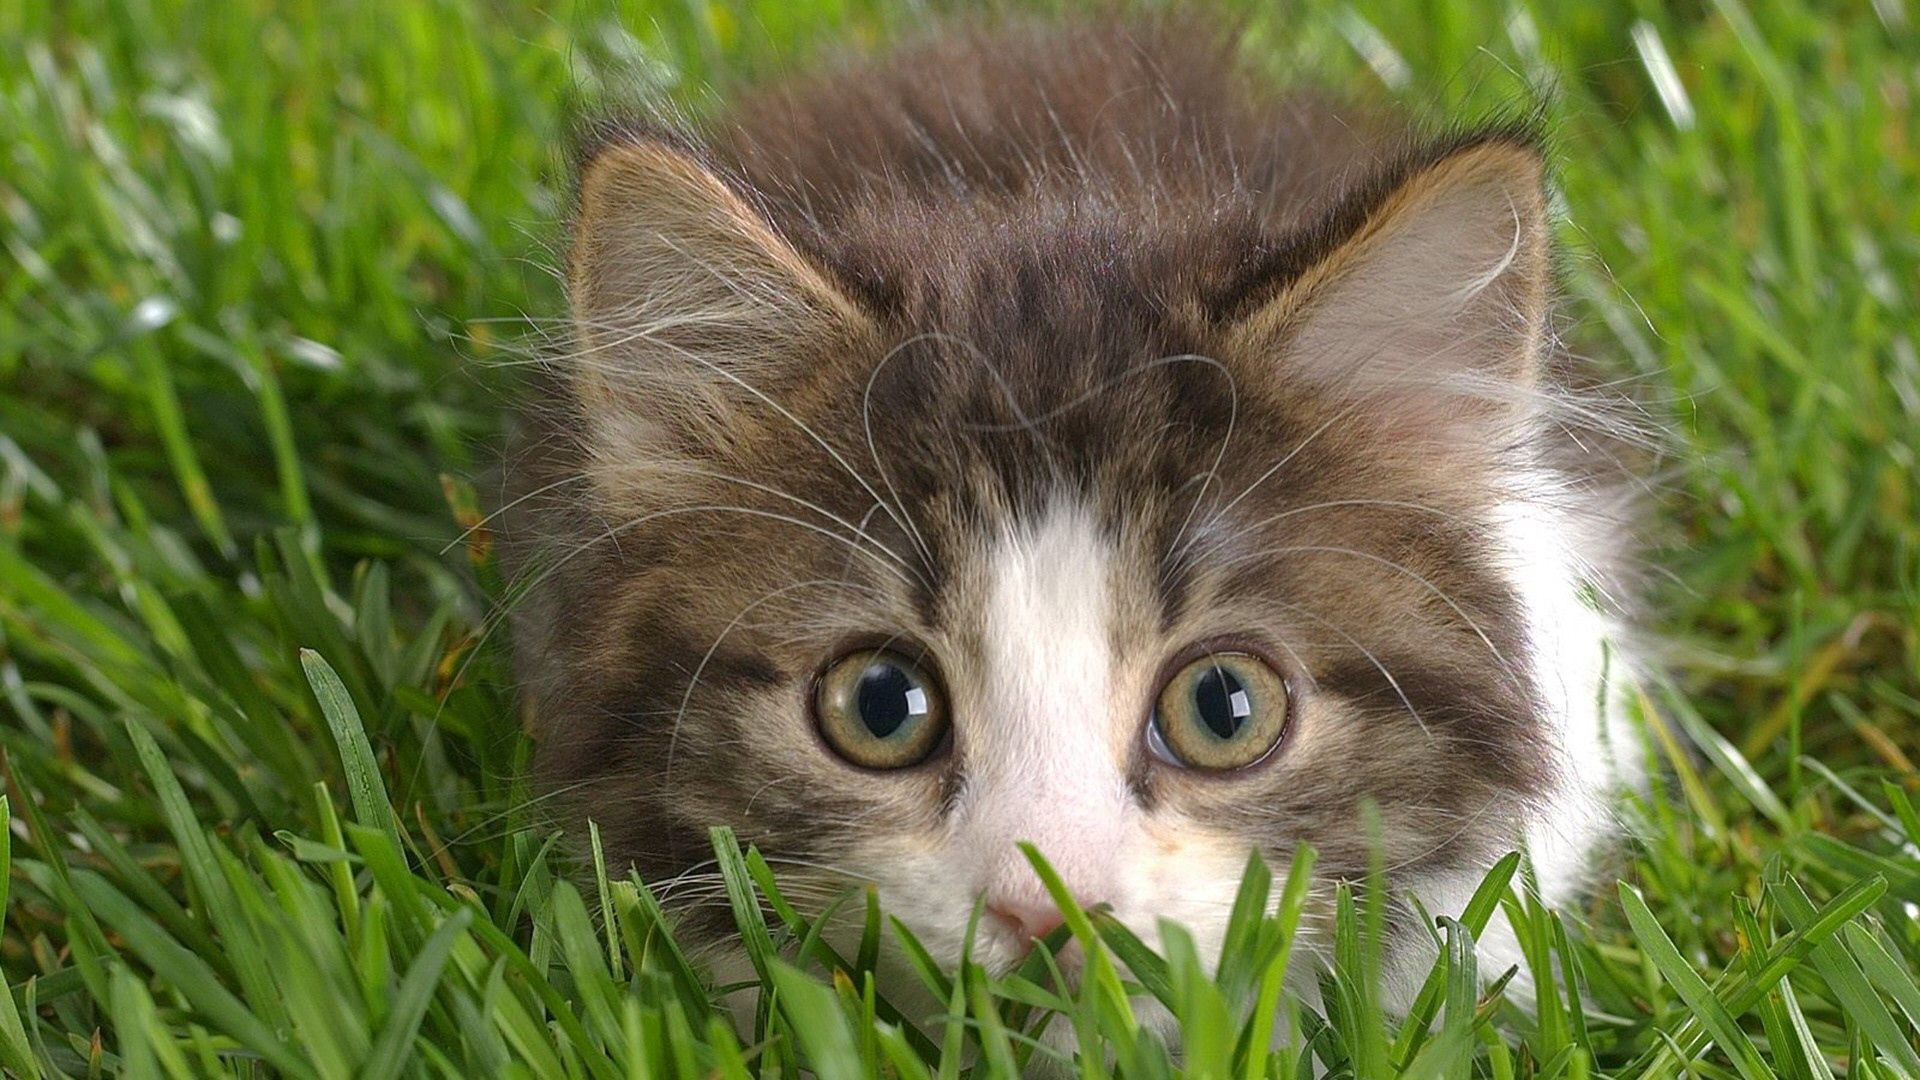 138966 download wallpaper Animals, Kitty, Kitten, Grass, Hunting, Hunt, Eyes, Fright screensavers and pictures for free